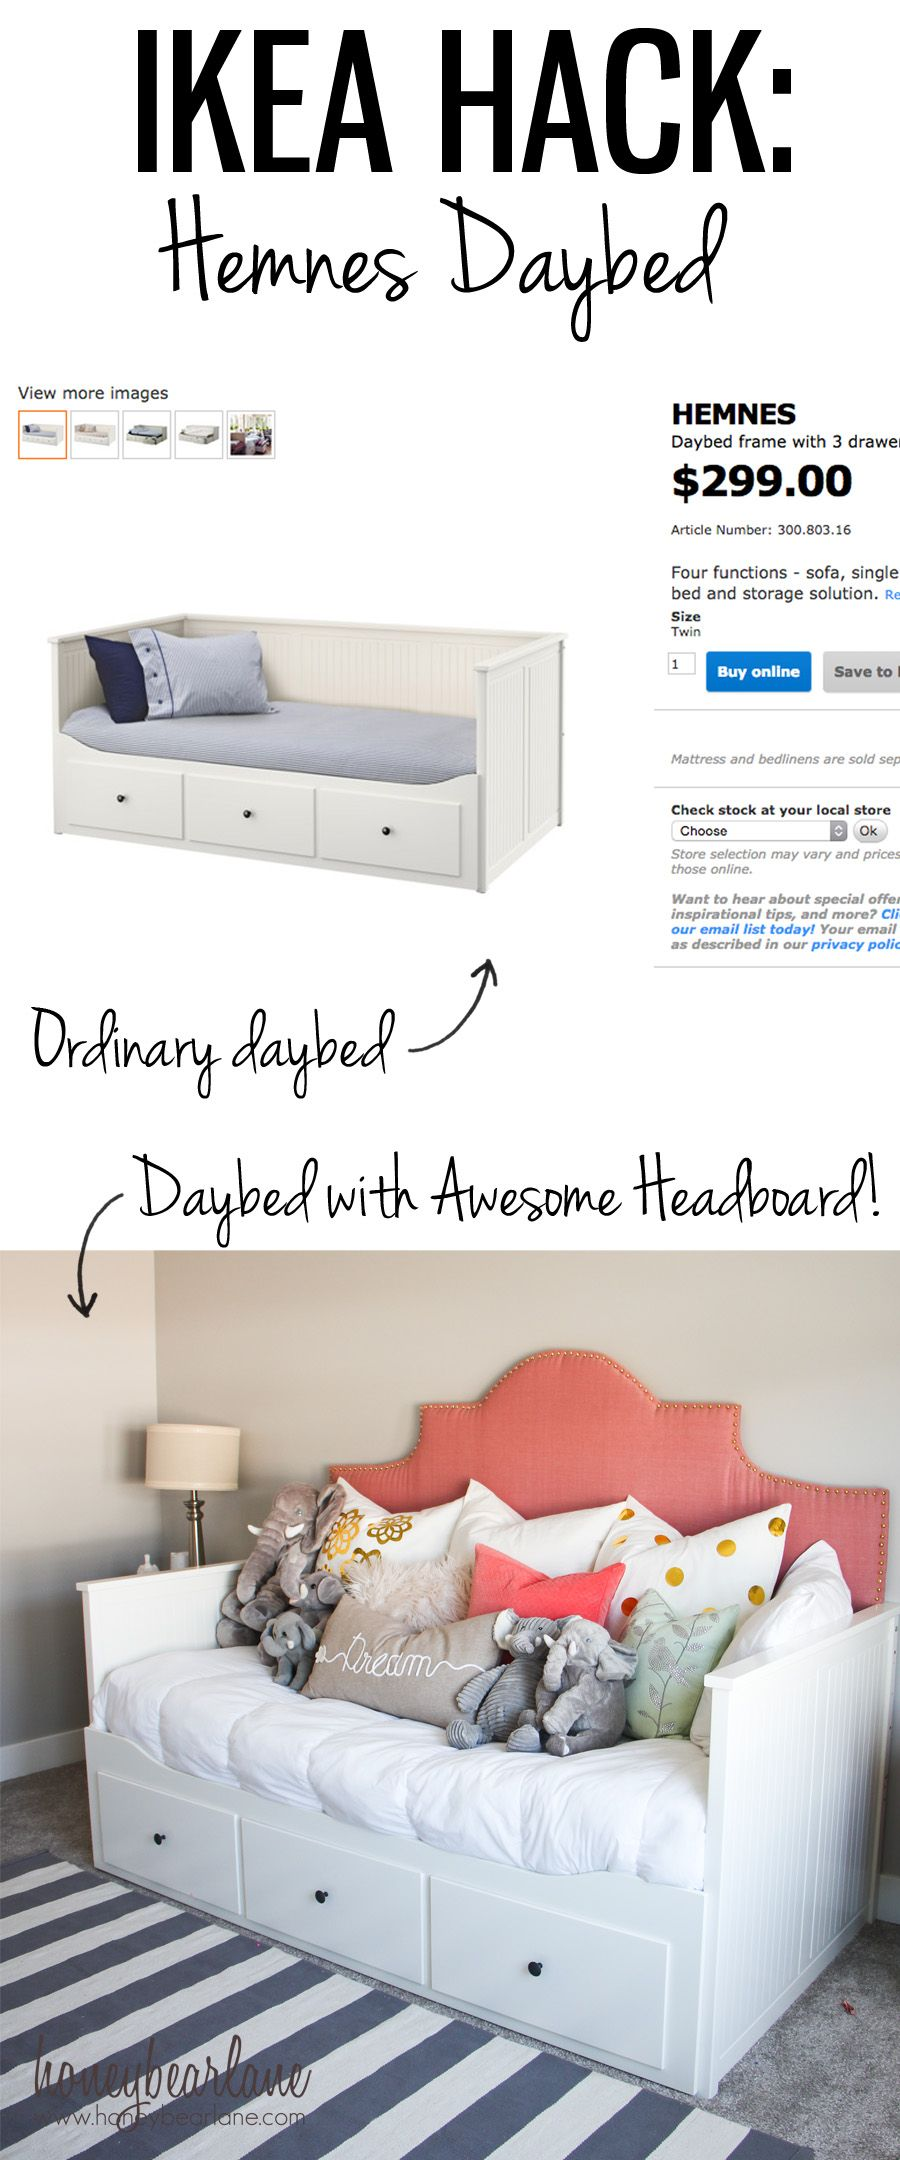 Ikea Twin Bed Frame Hemnes Daybed Ikea Hack | Nursery | Daybed Room, Ikea